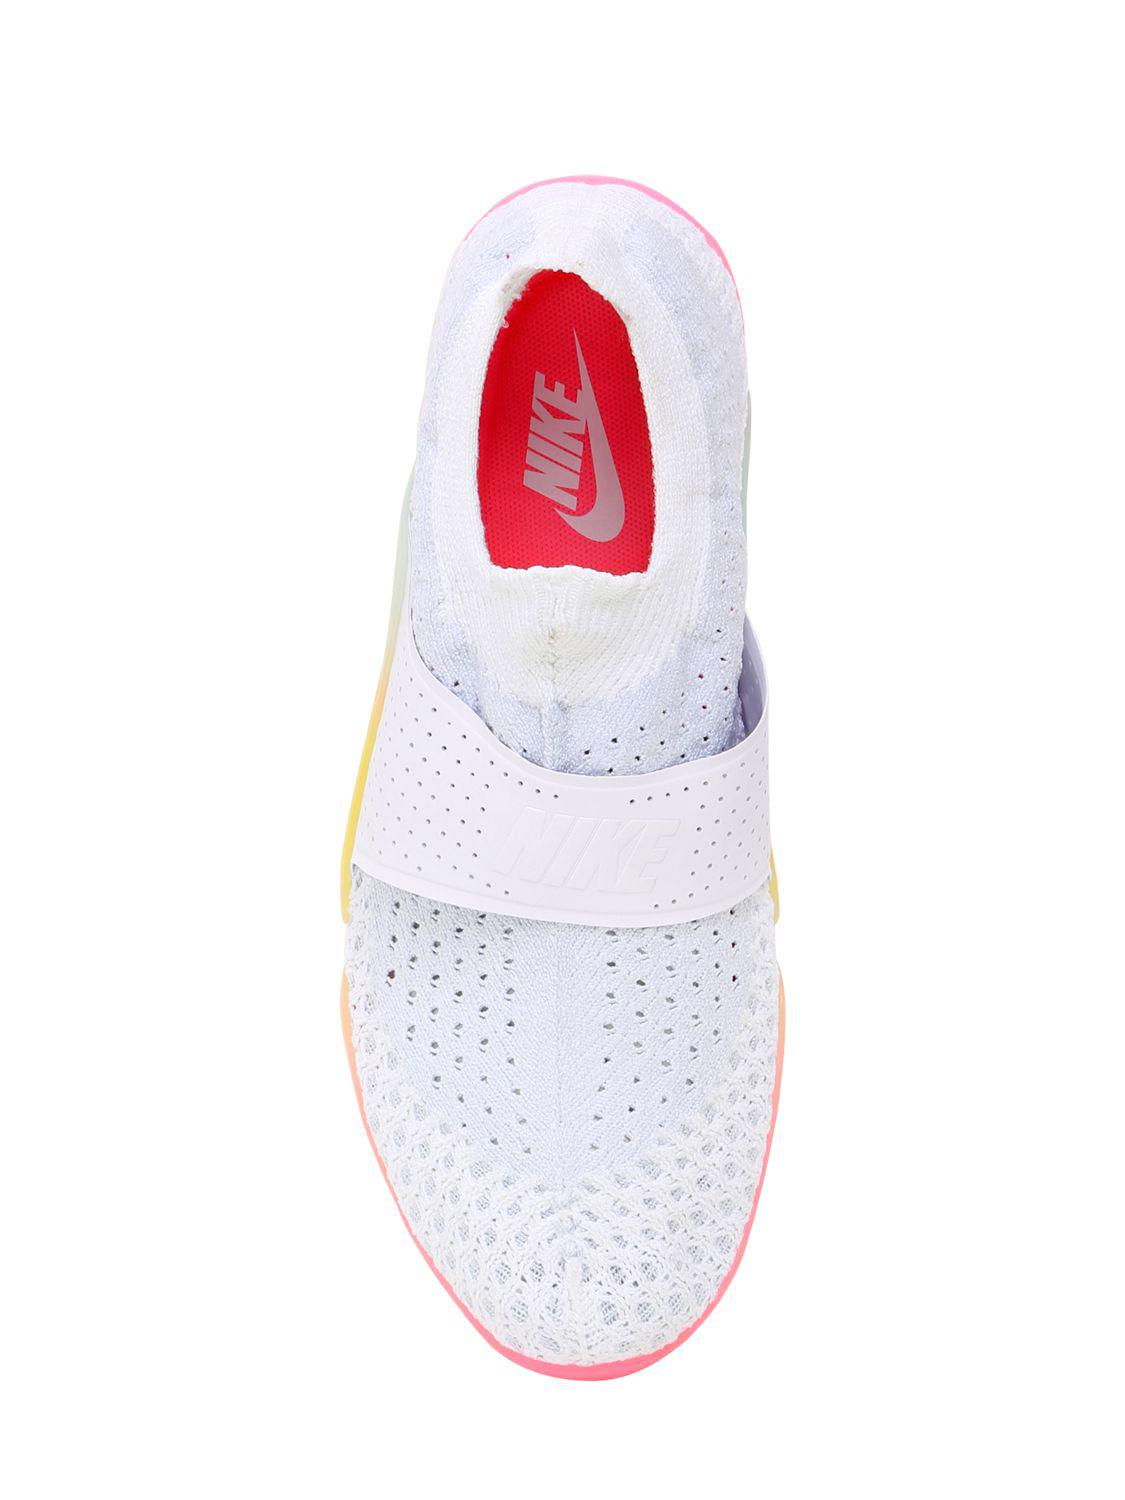 new products 59dfa c7396 Lyst - Nike Lab City Knife 3 Flyknit Sneakers in White